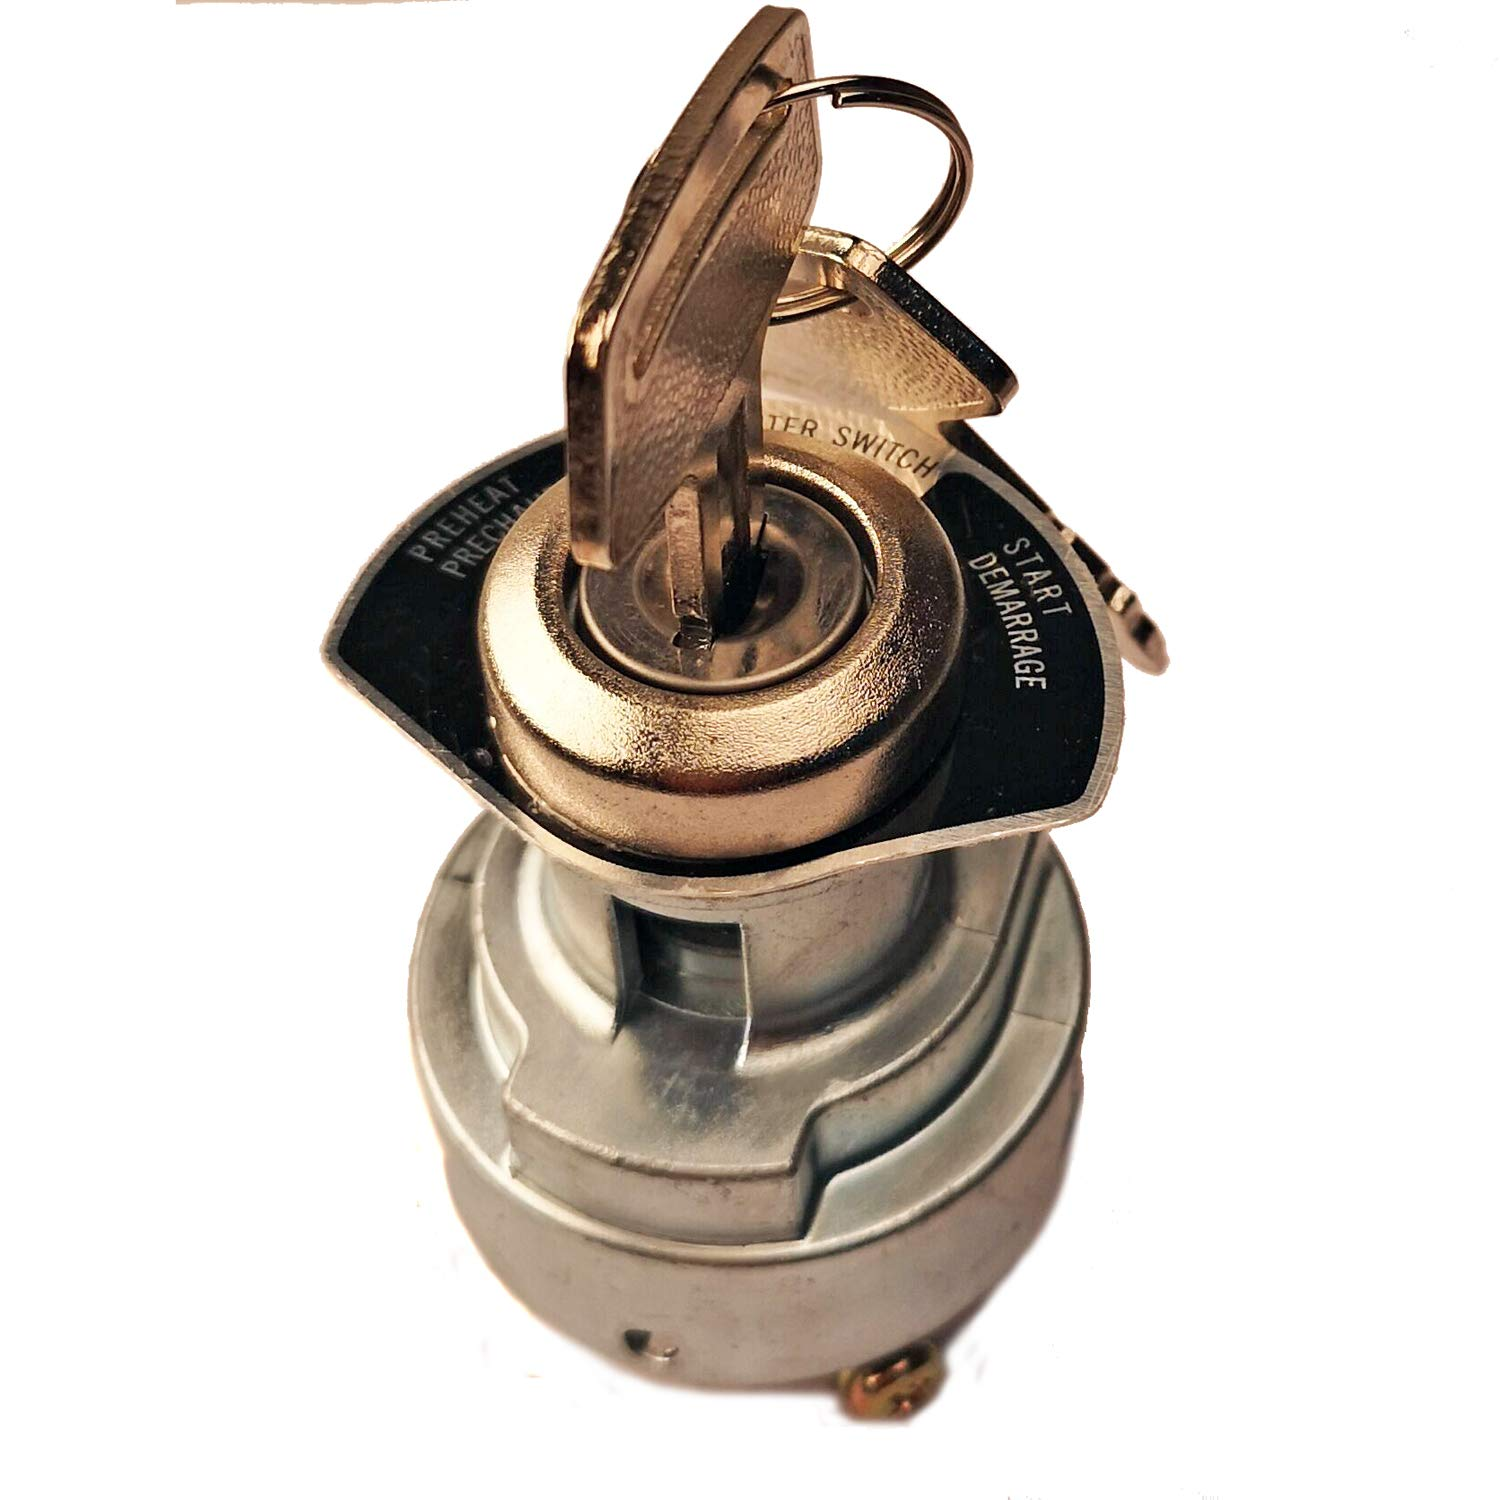 Mover Parts Ignition Starter Key Switch 1E013-63590 for Kubota Grasshopper 721 721G2 721D 721D2 321D 722D 722D2 722DT6 322D 725D 725DT6 325D 729 729G2 729T6 329 928D 928D2 930D2 428D